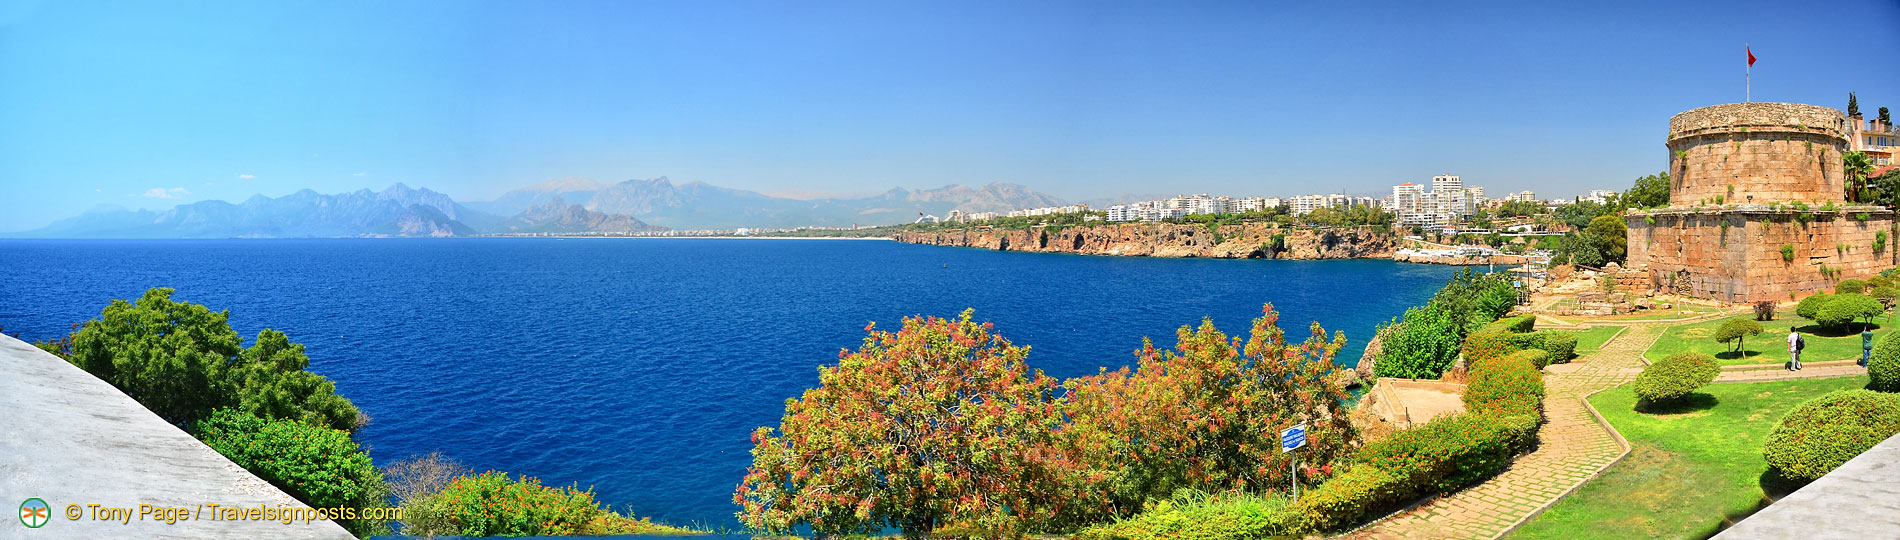 A panorama of Antalya coastline